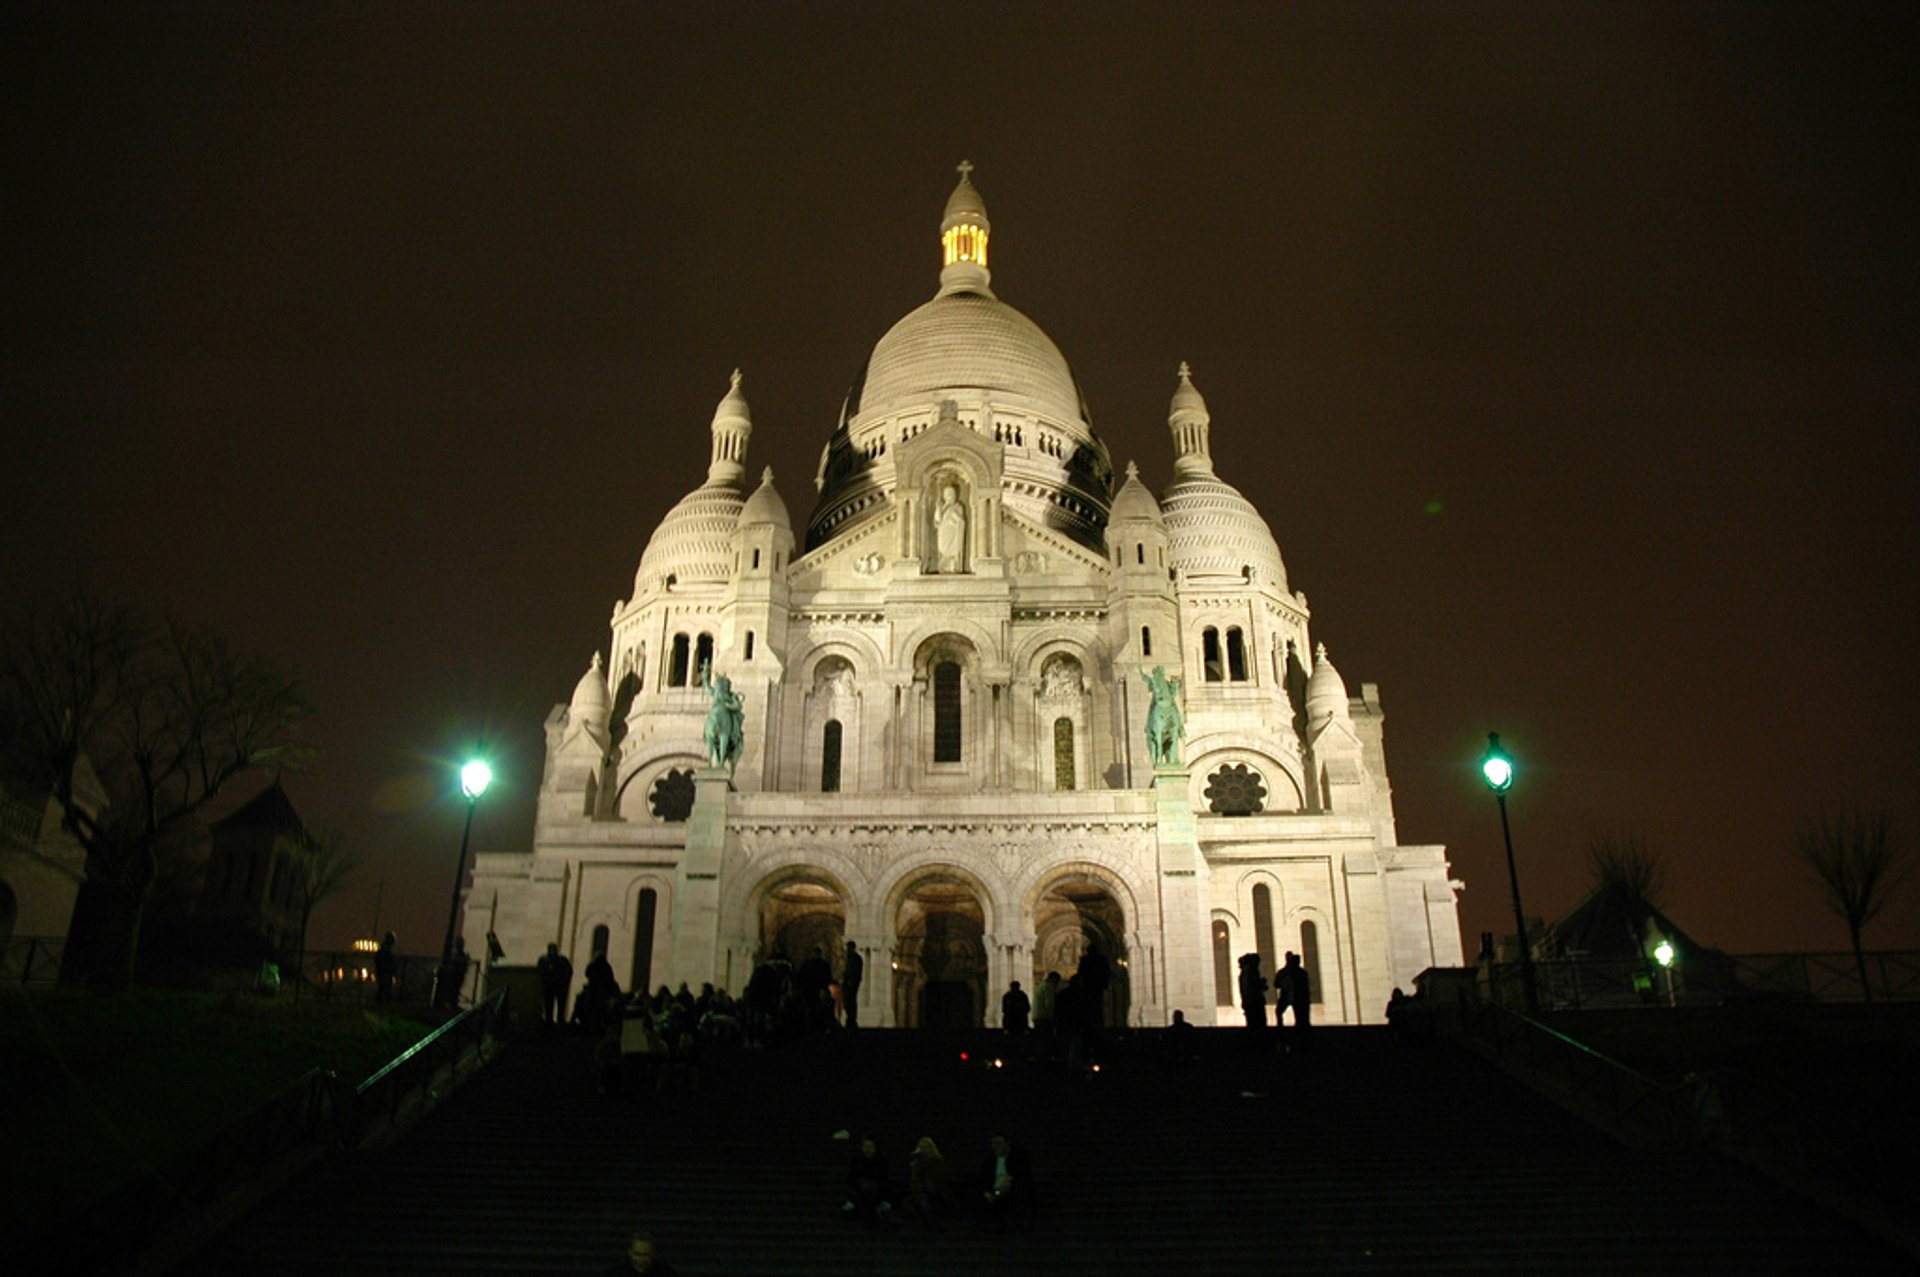 Best time for Summer Nights at Sacré Cœur in Paris 2020